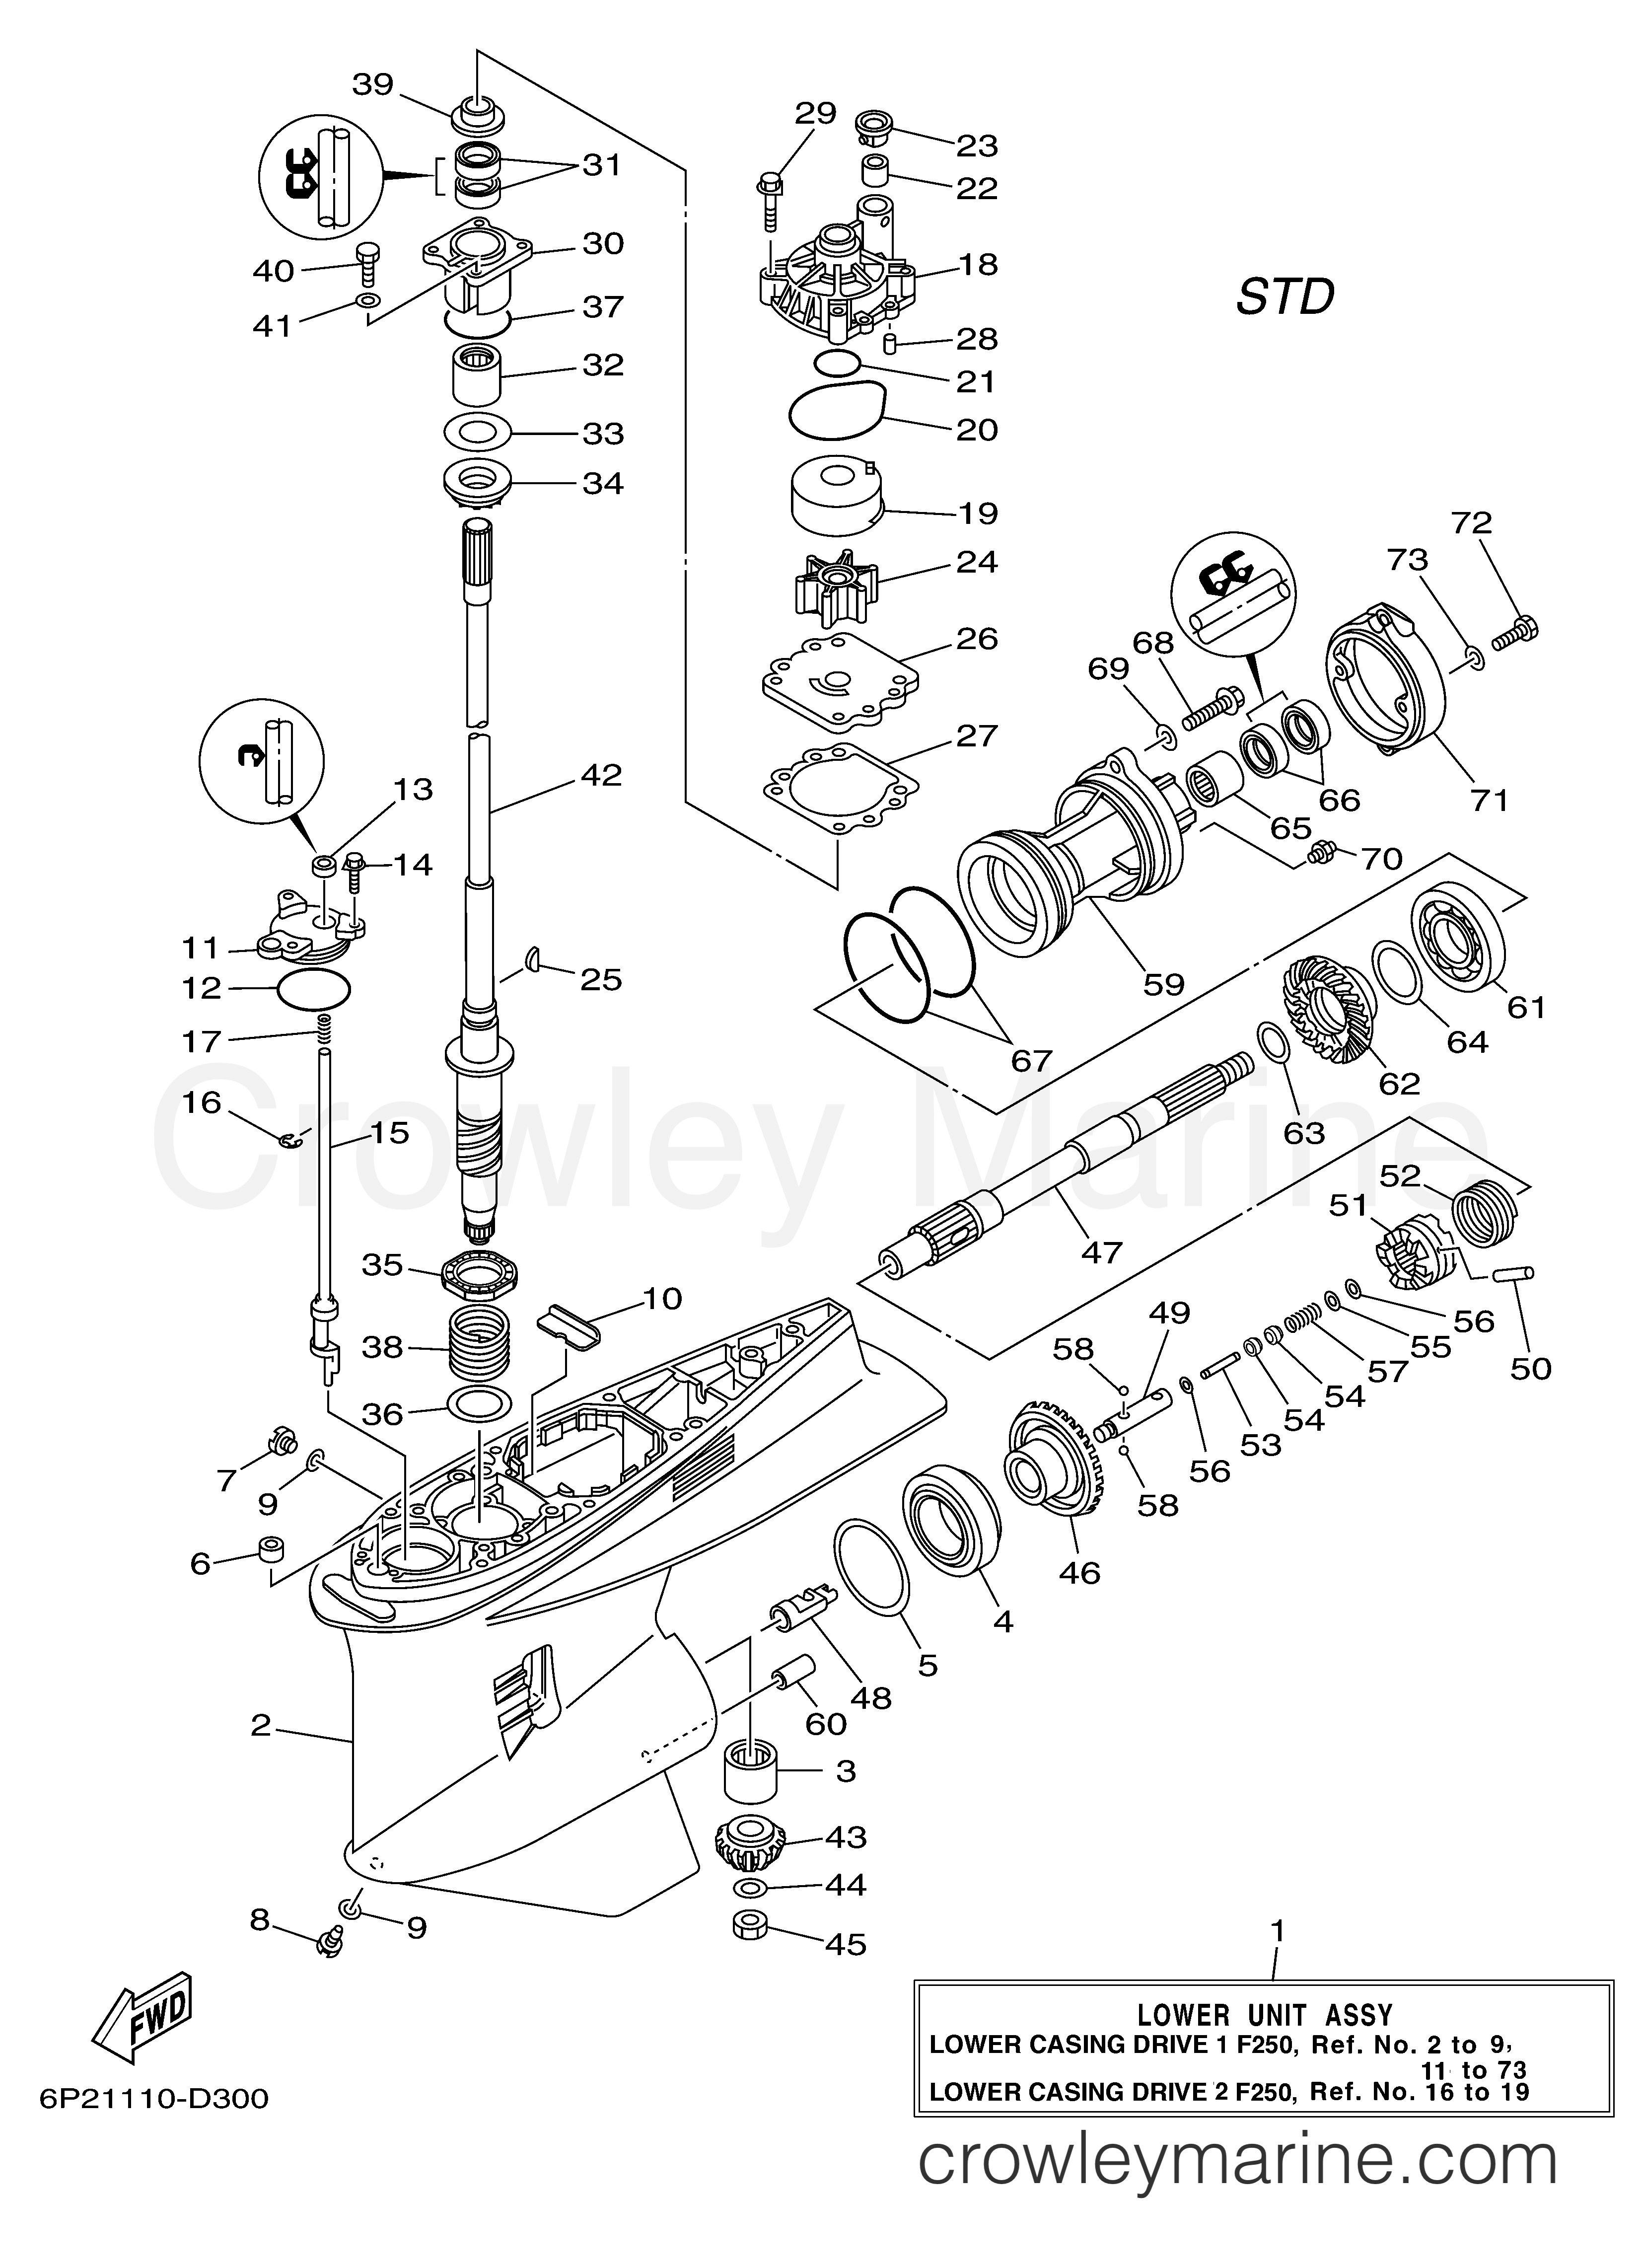 Lower Casing Drive 1 F250